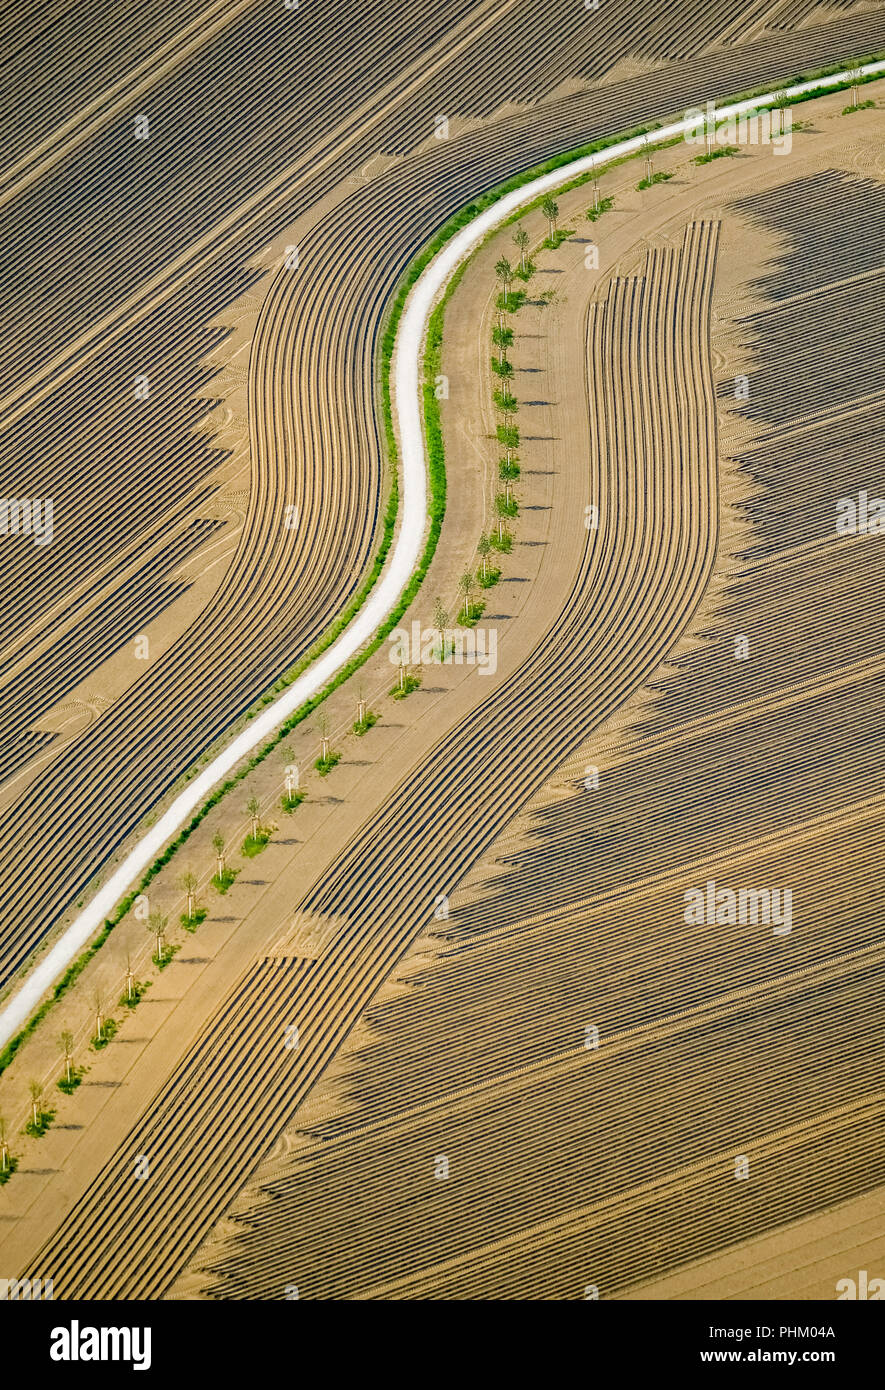 Aerial view, field with dirt road between An Der Linde and Castroper Straße in Sodingen,field, harrowed field, tire tracks, graphic tracks, Herne, Ruh - Stock Image